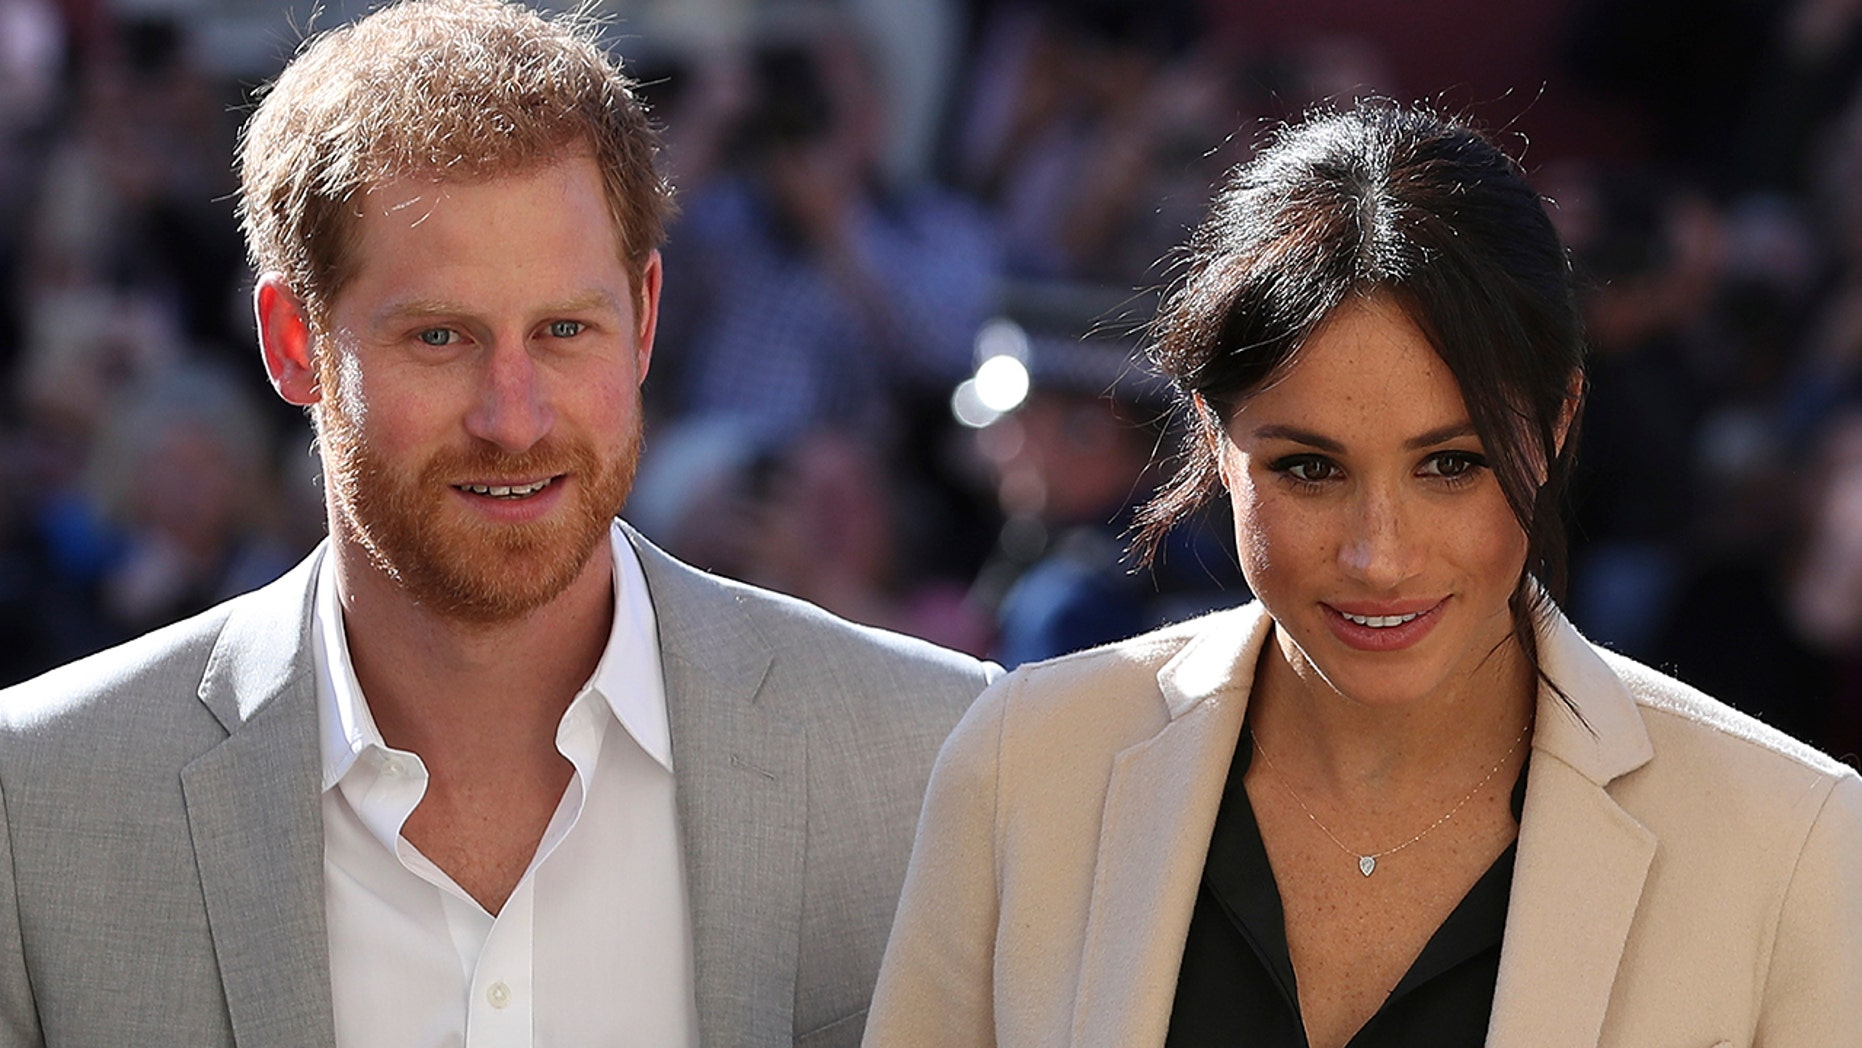 Britain's Prince Harry and Meghan, the Duchess of Sussex greet well wishers during their visit to Chichester, south east England, Wednesday Oct. 3, 2018. The Duke and Duchess of Sussex made their first joint official visit to Sussex.